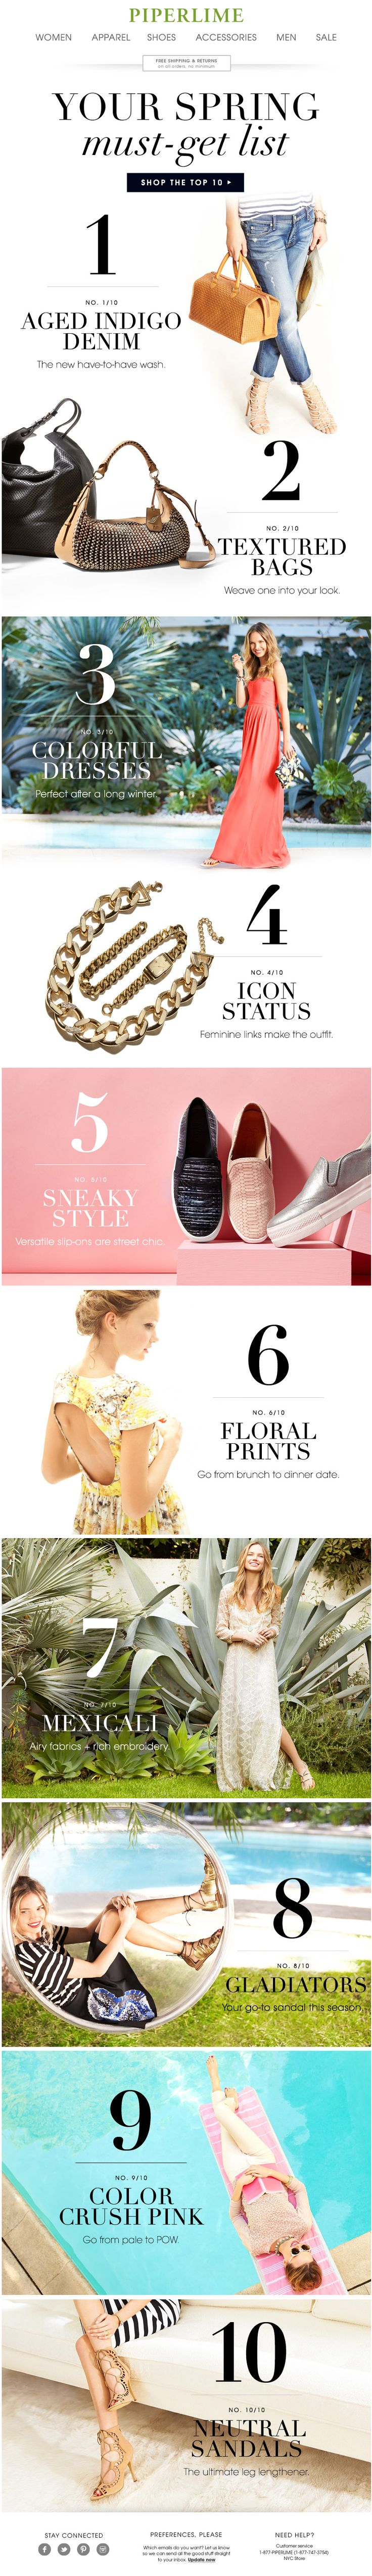 THE top 10 spring trends you don't want to miss | Awesome Screenshot